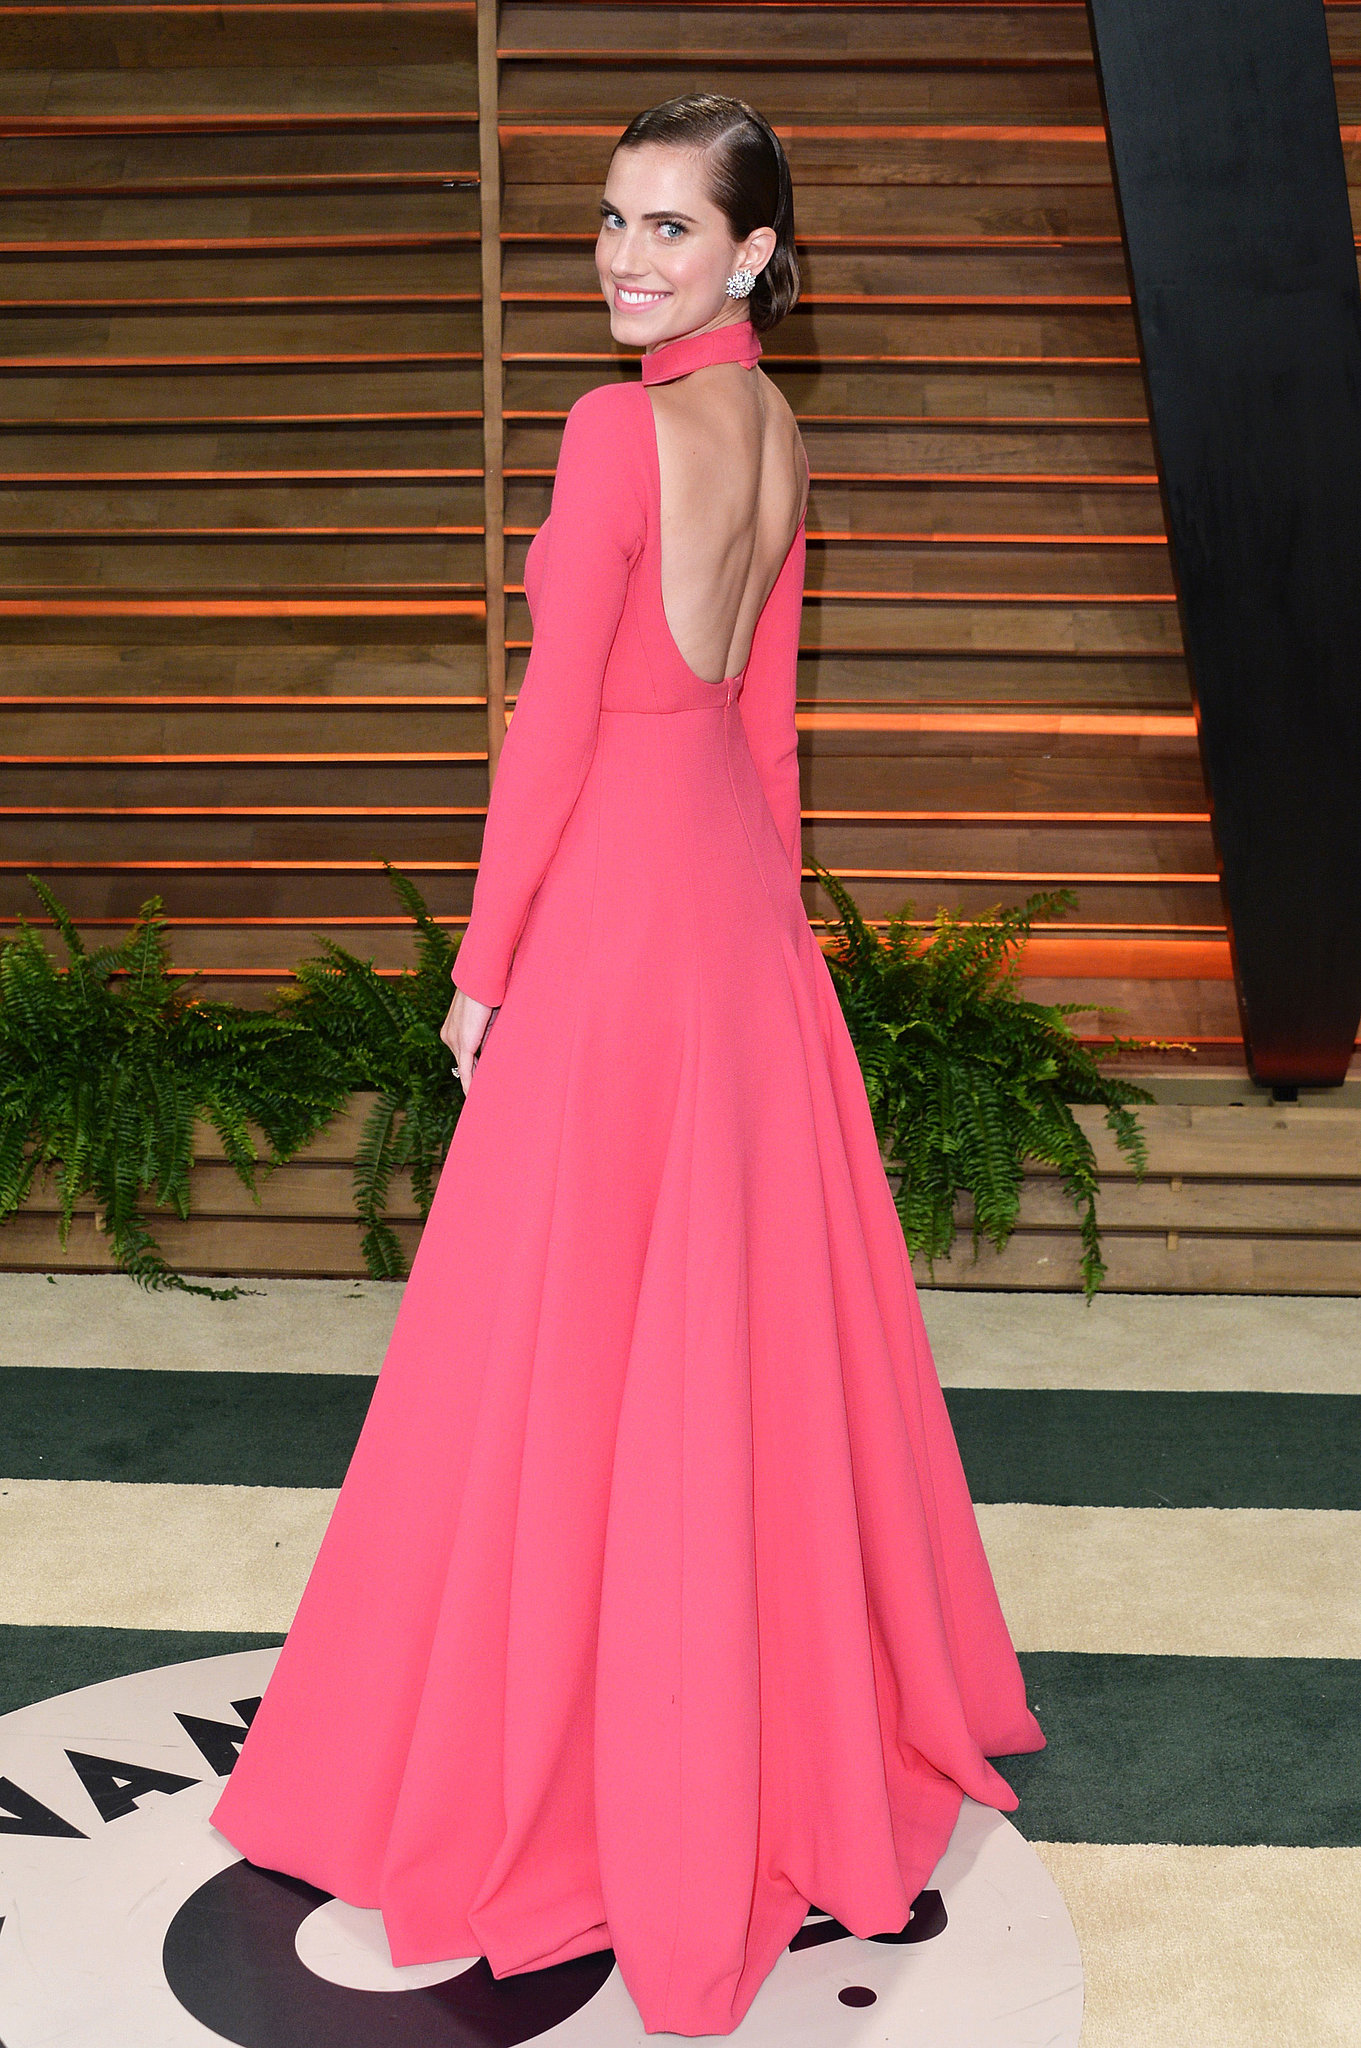 Alisson Williams en robe rose à dos nu lors de la soirée de Vanity Fair Oscar